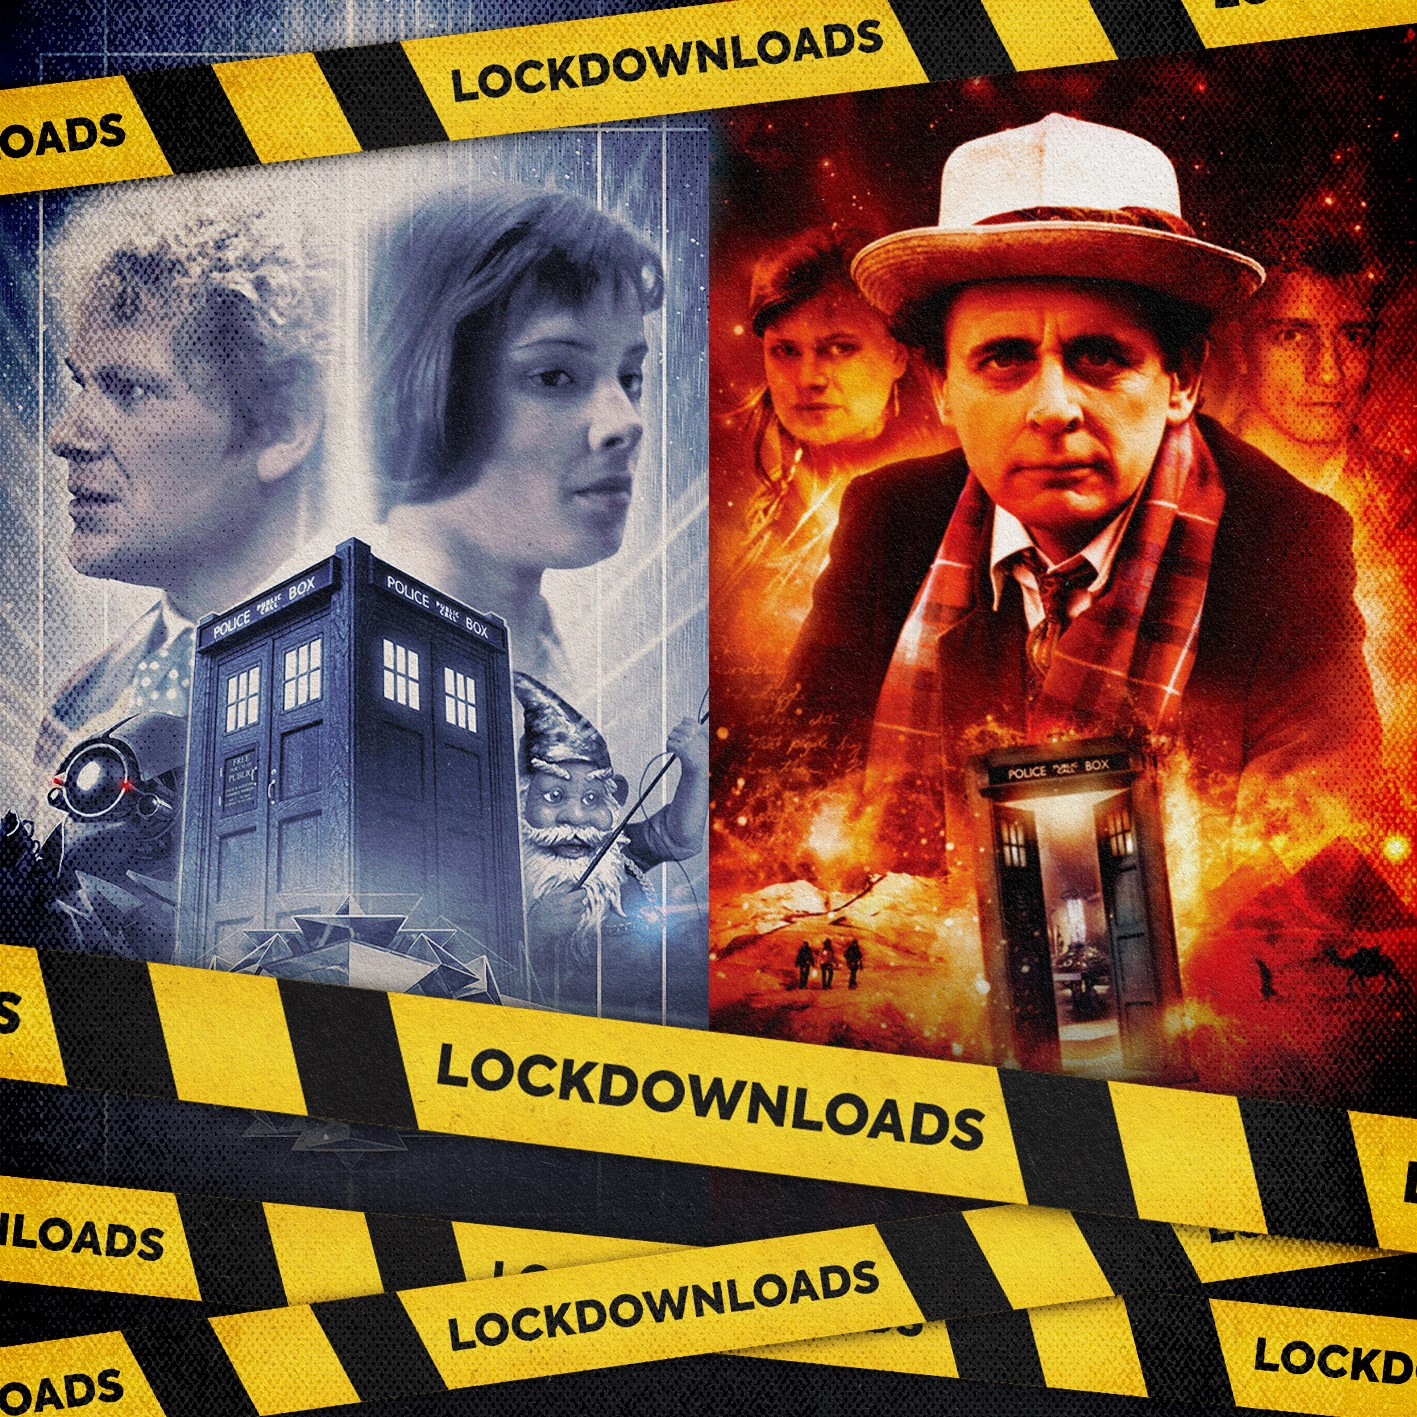 Two new #lockdownloads for this week - An Eye for Murder and The Word Lord (c) Big Finish Productions Doctor Who Colin Baker Sylester McCoy Nicola Bryant Sixth Doctor Seventh Doctor Peri